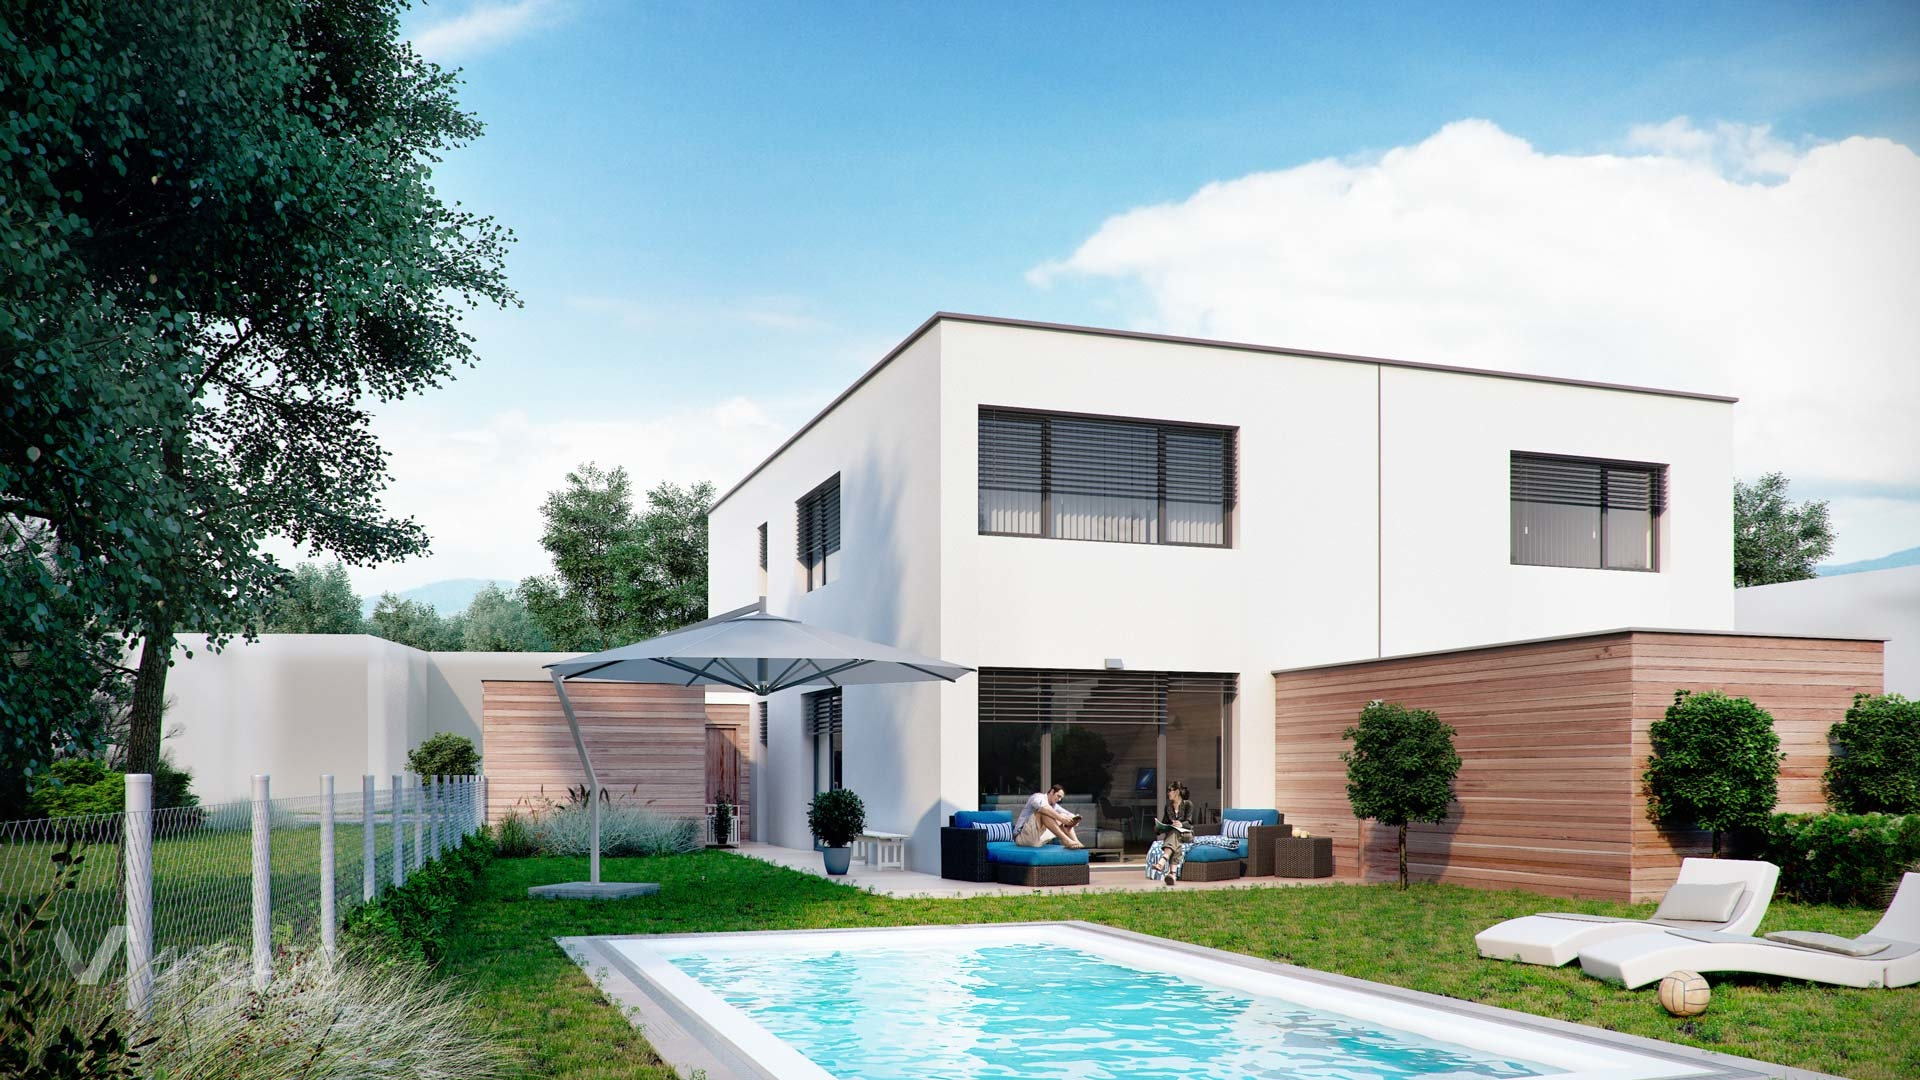 Linz twin house exterior visualization garden view with swimming pool